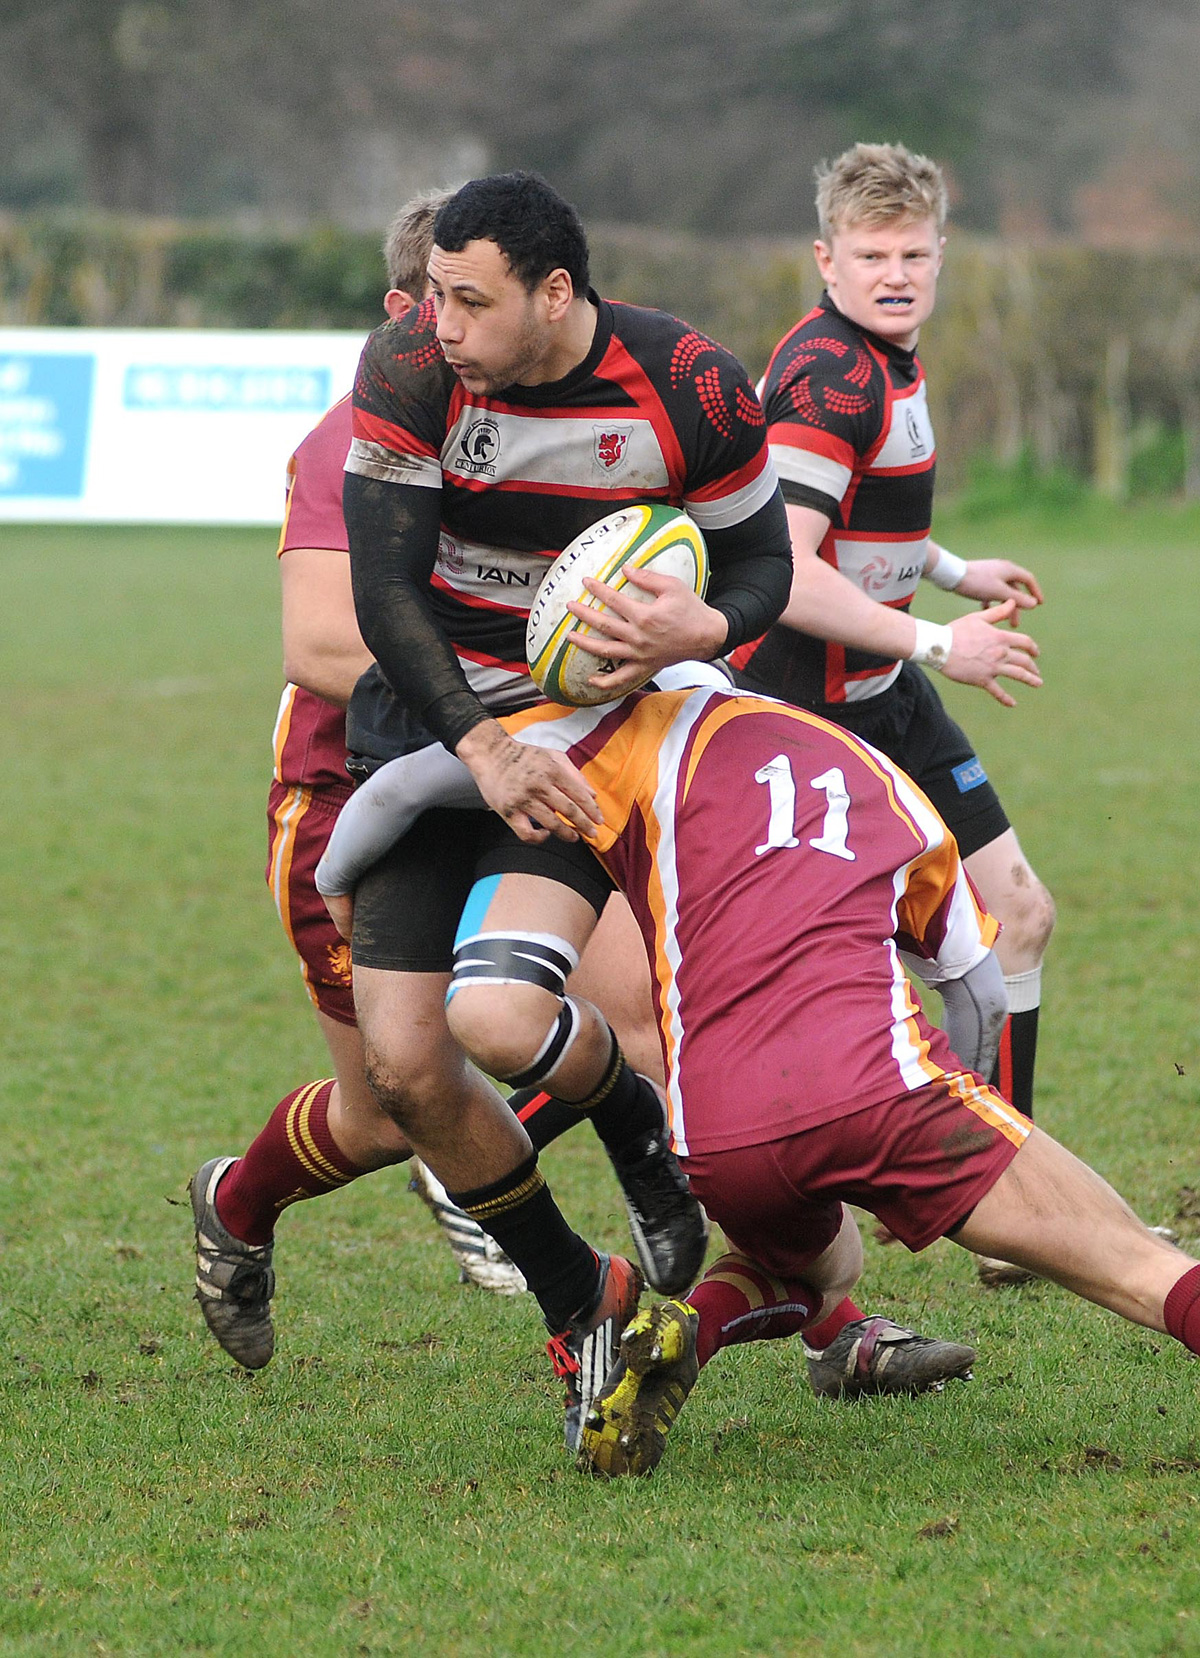 Malton & Norton RUFC gripped by threat of relegation